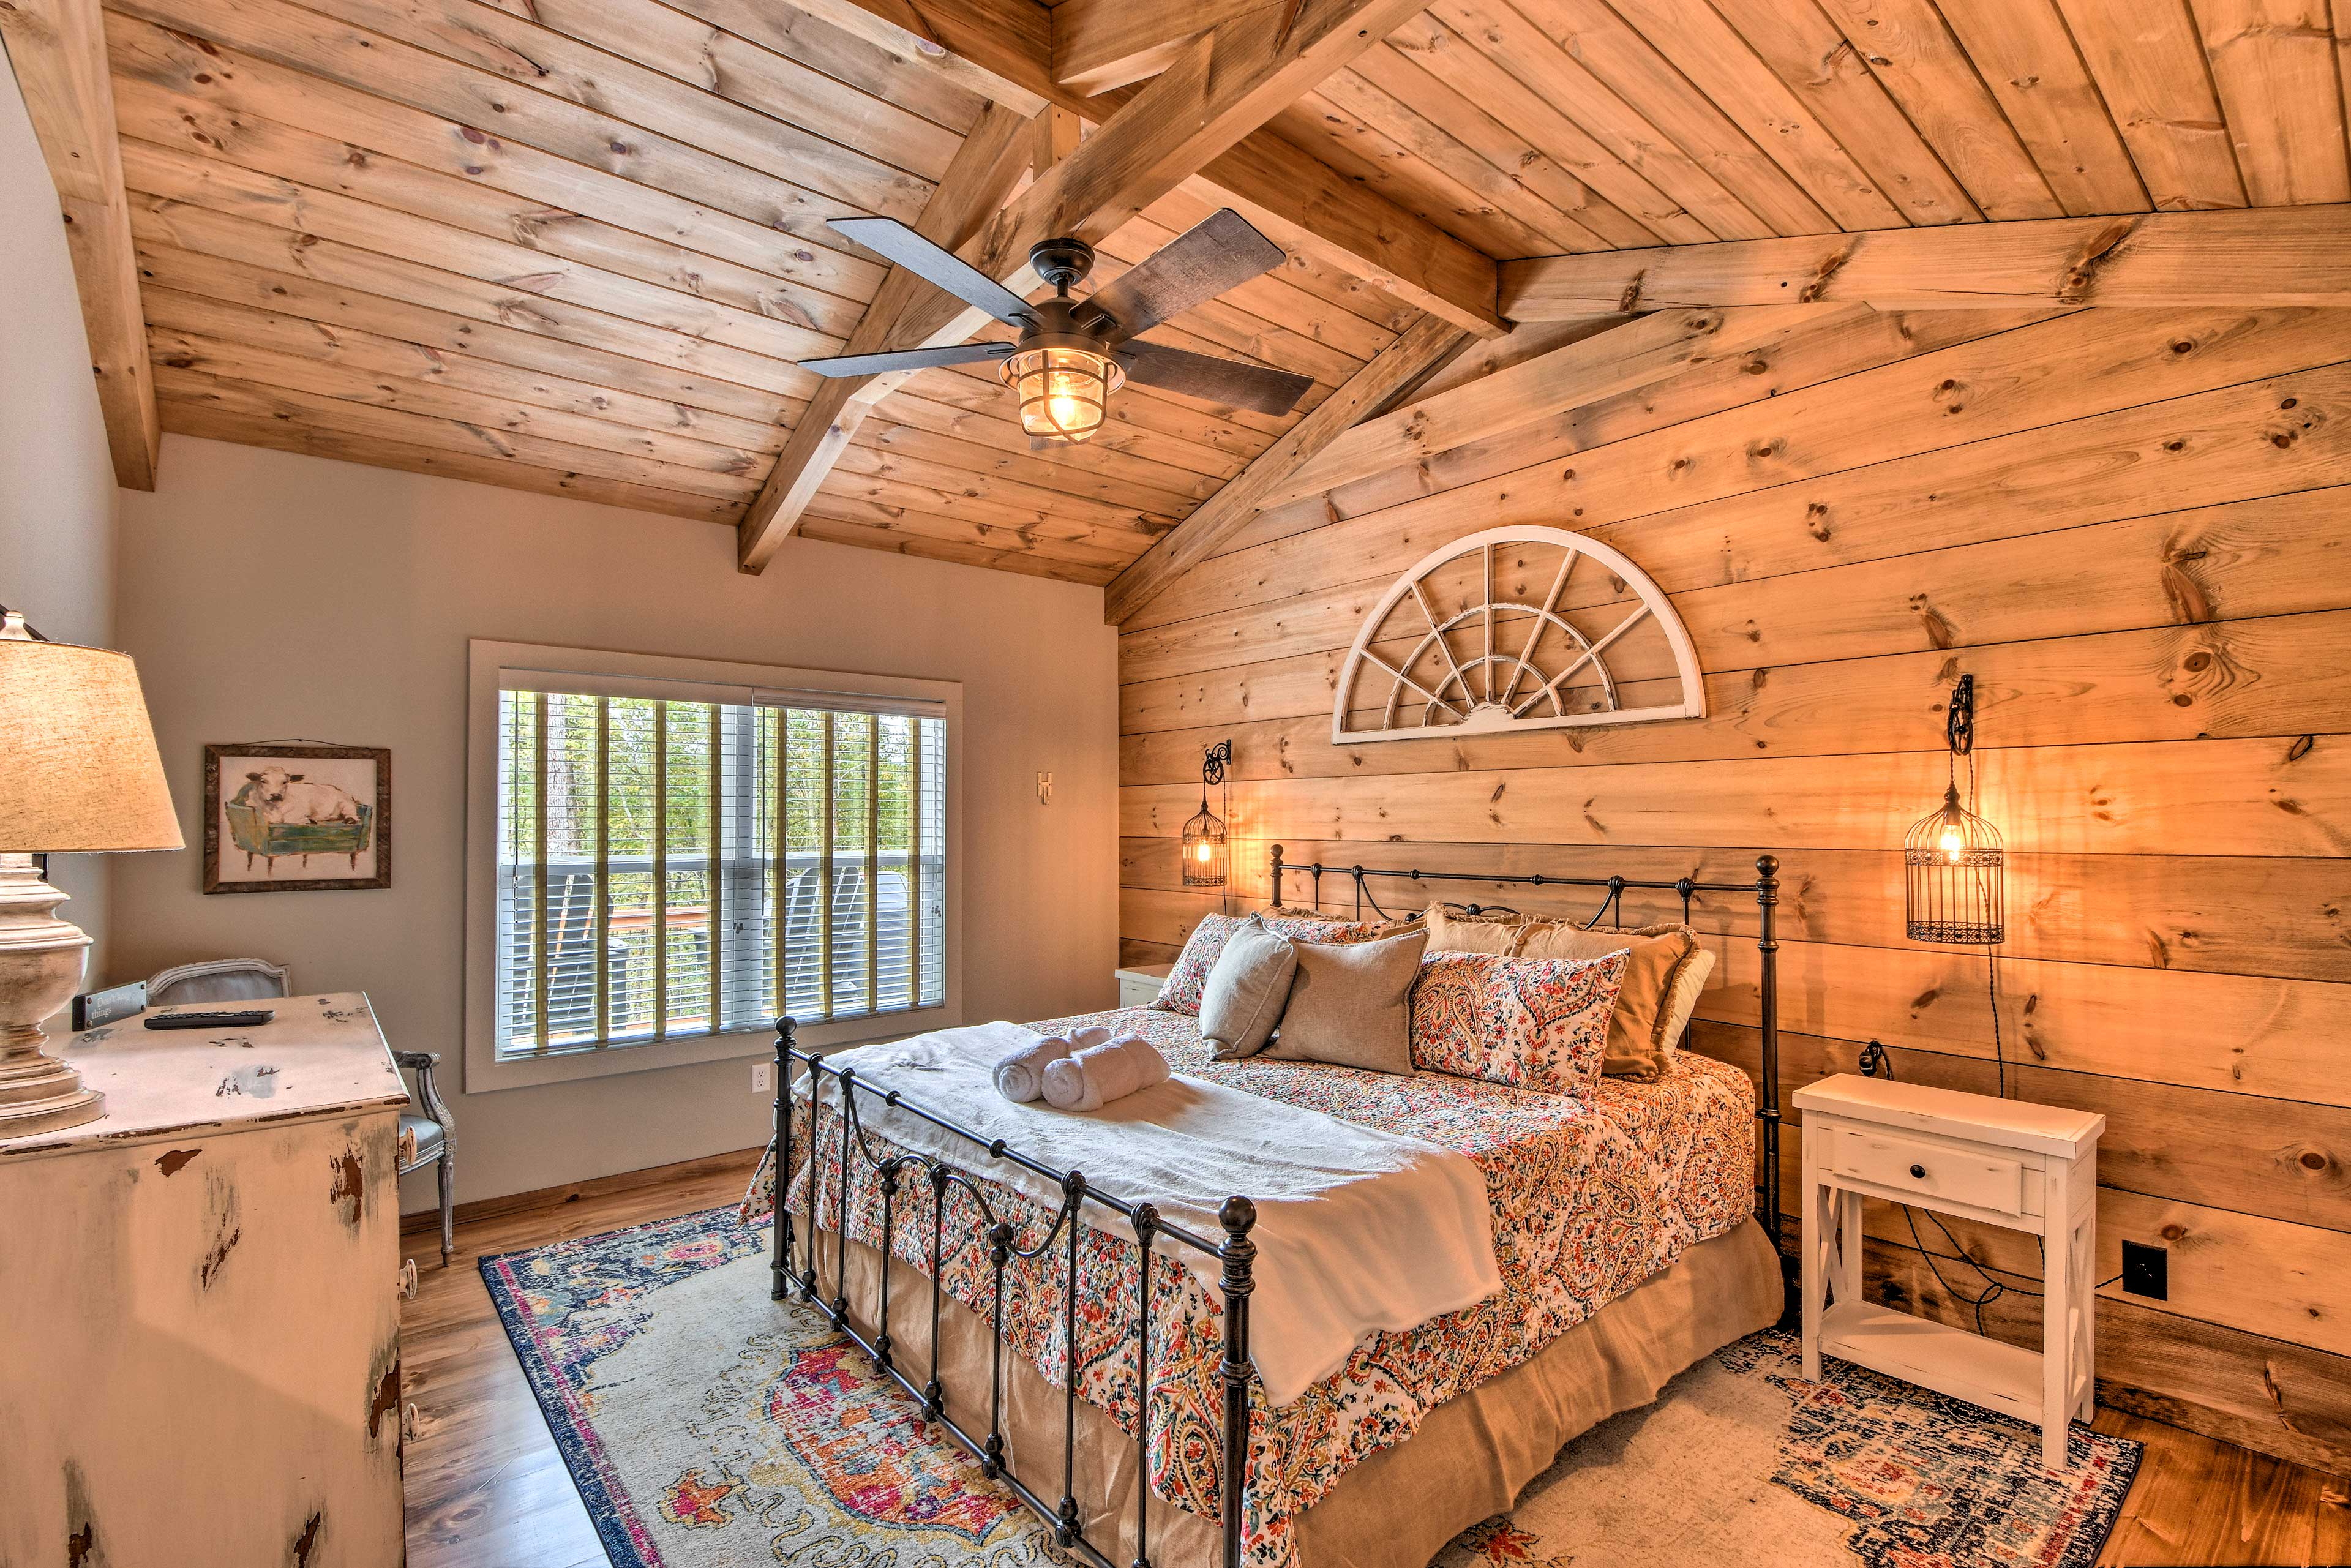 The home has 2 master bedrooms with king beds.